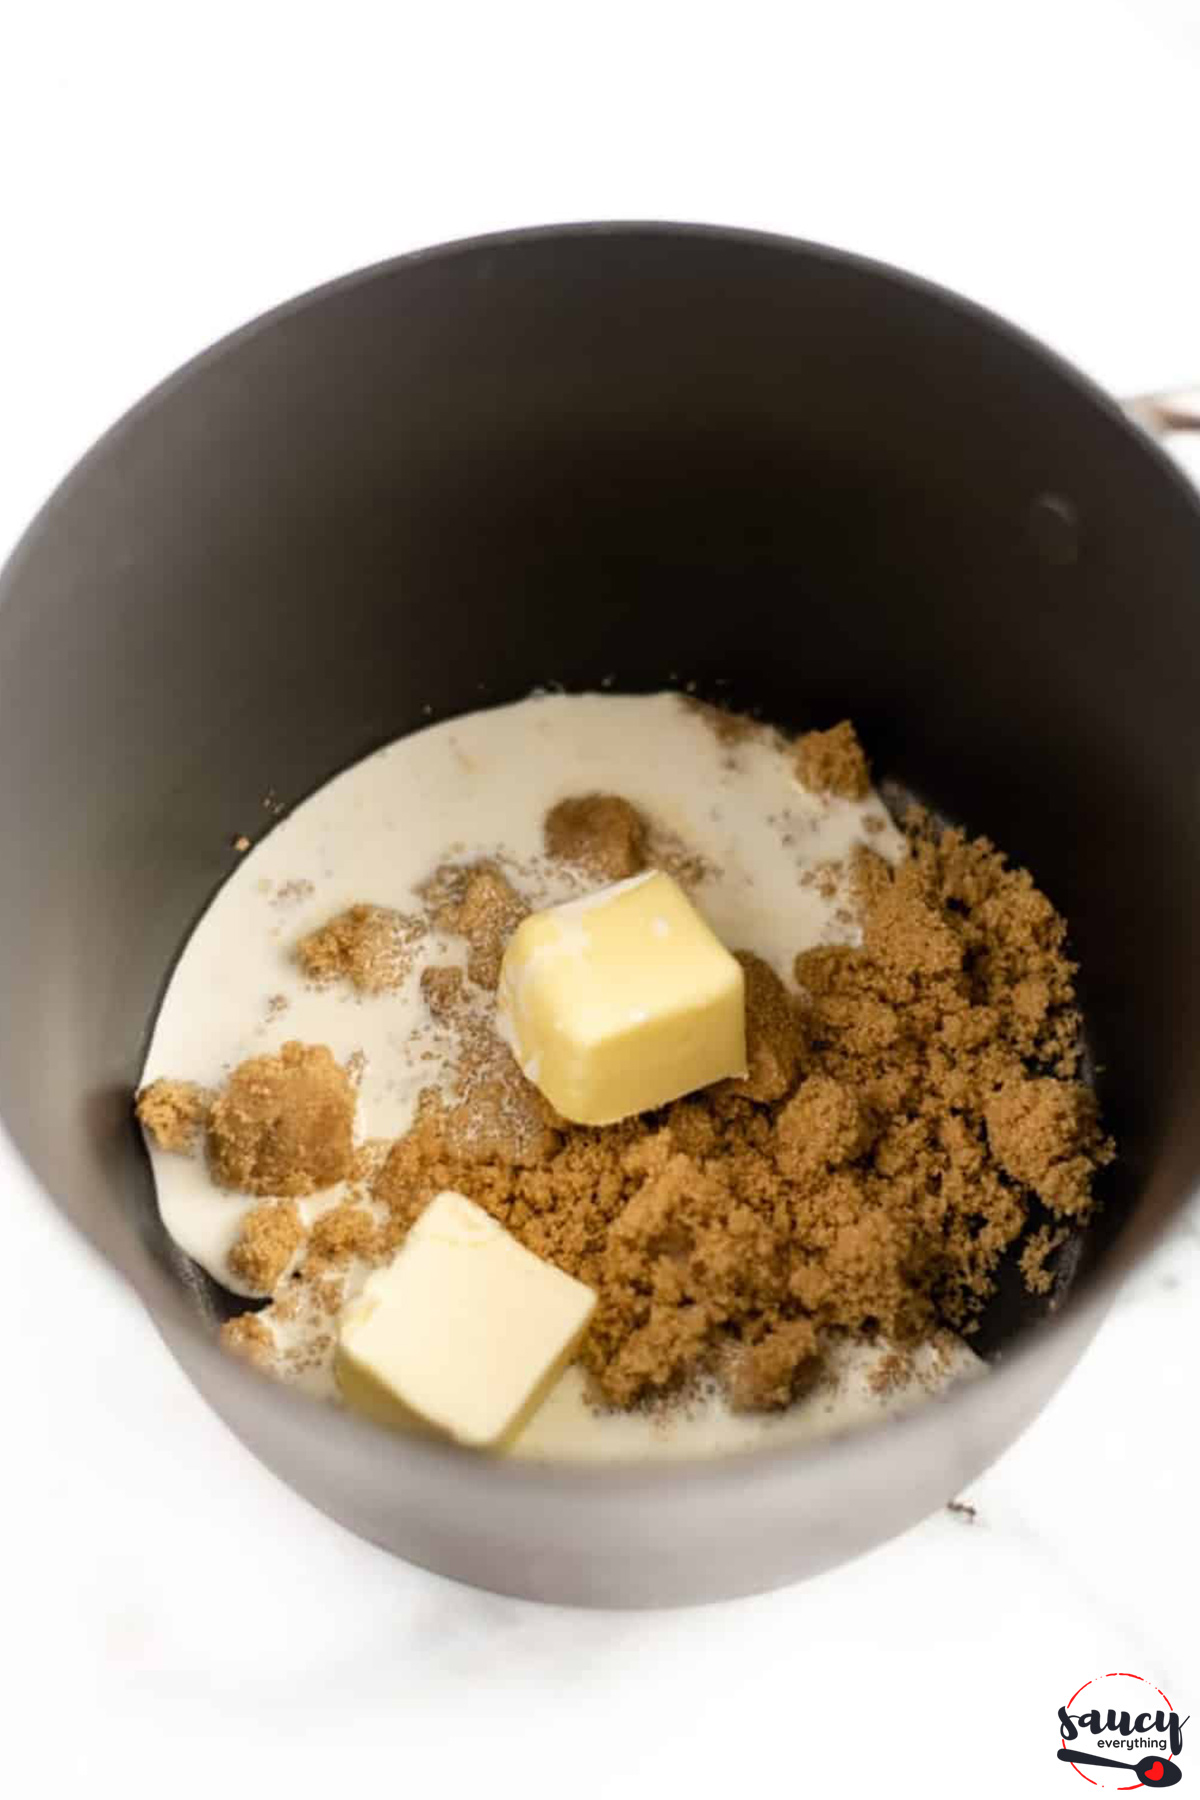 Ingredients to make butterscotch sauce in a pot